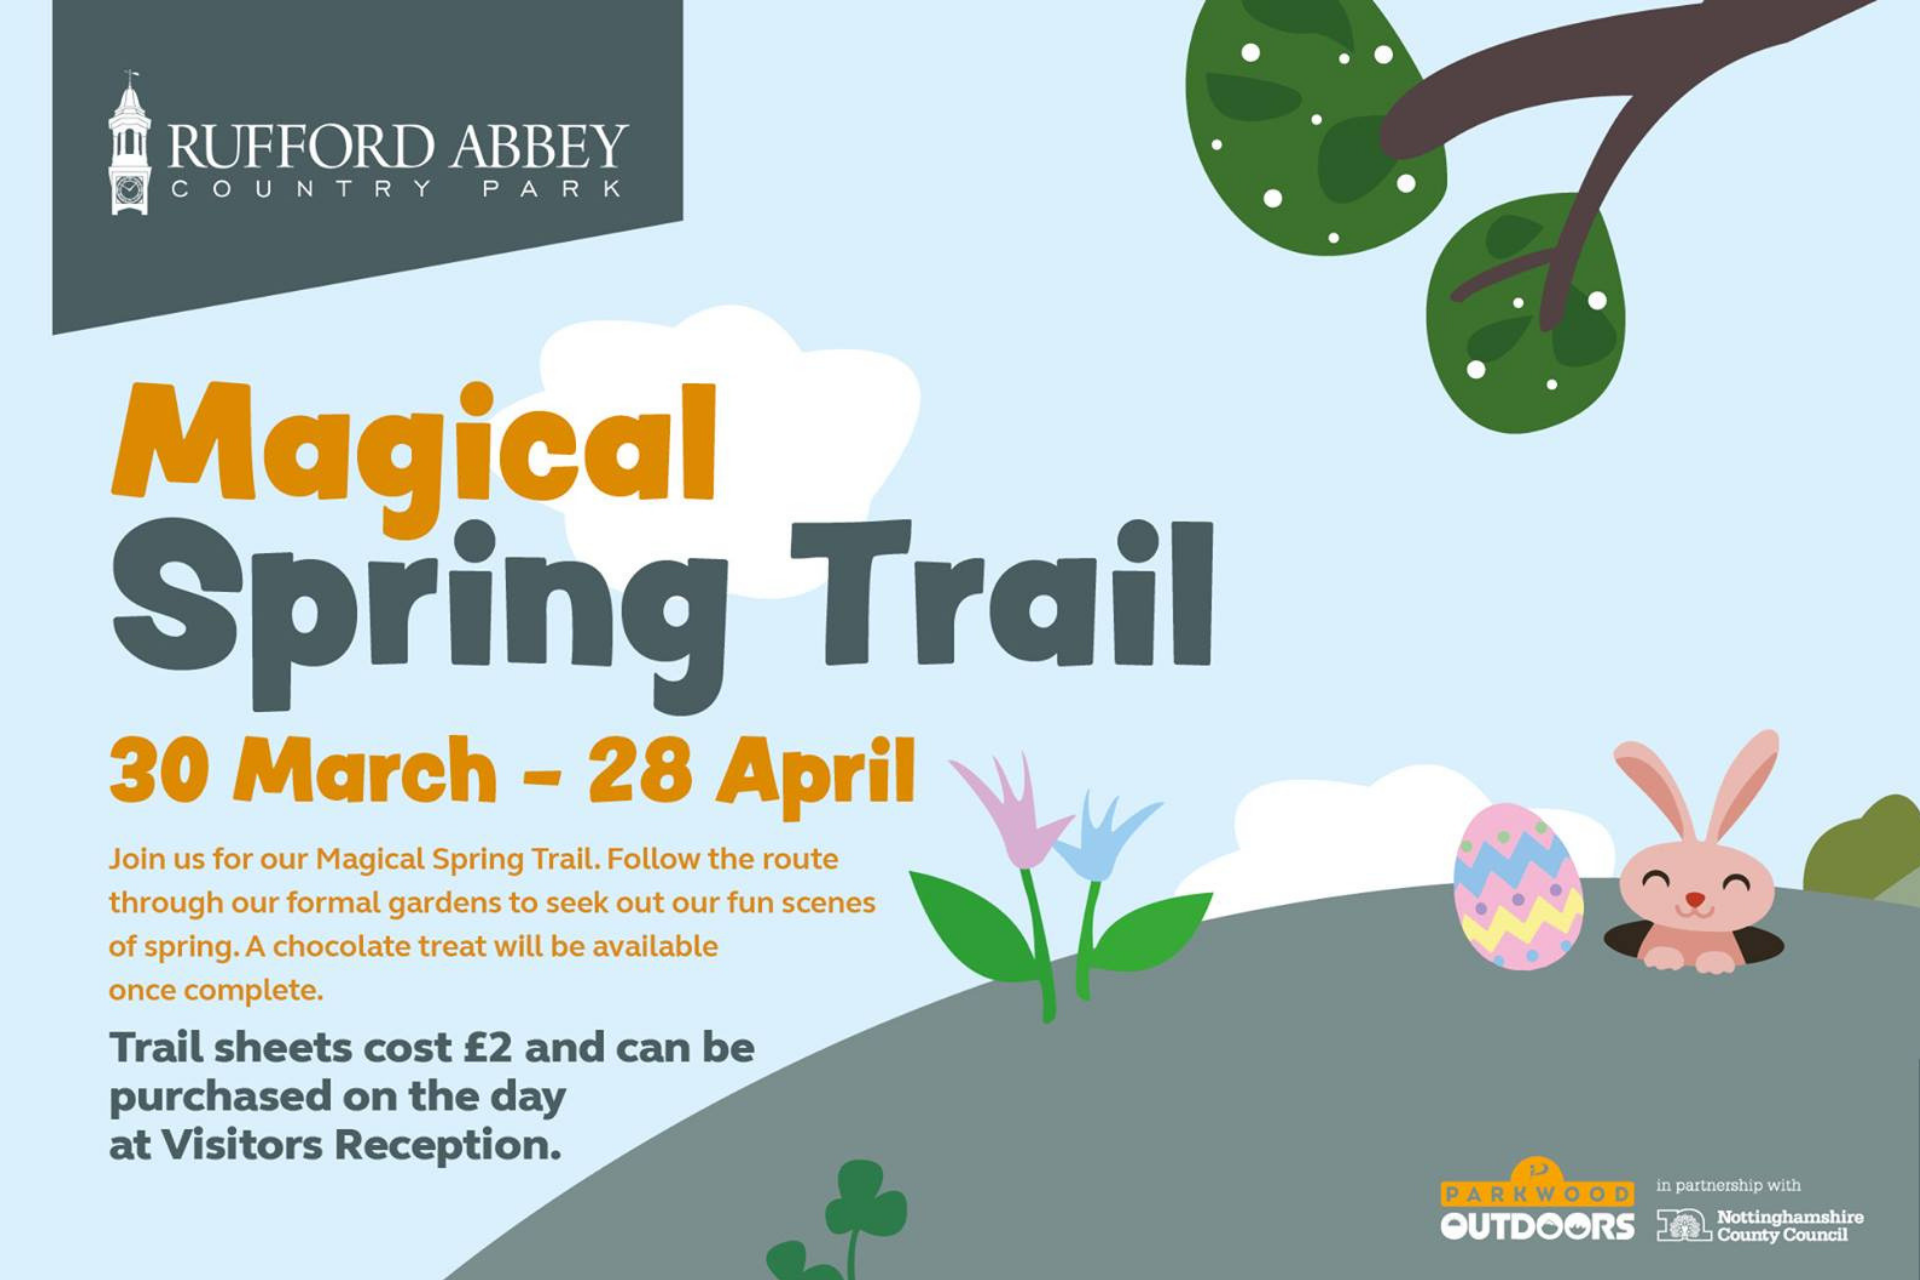 Magical Spring Trail